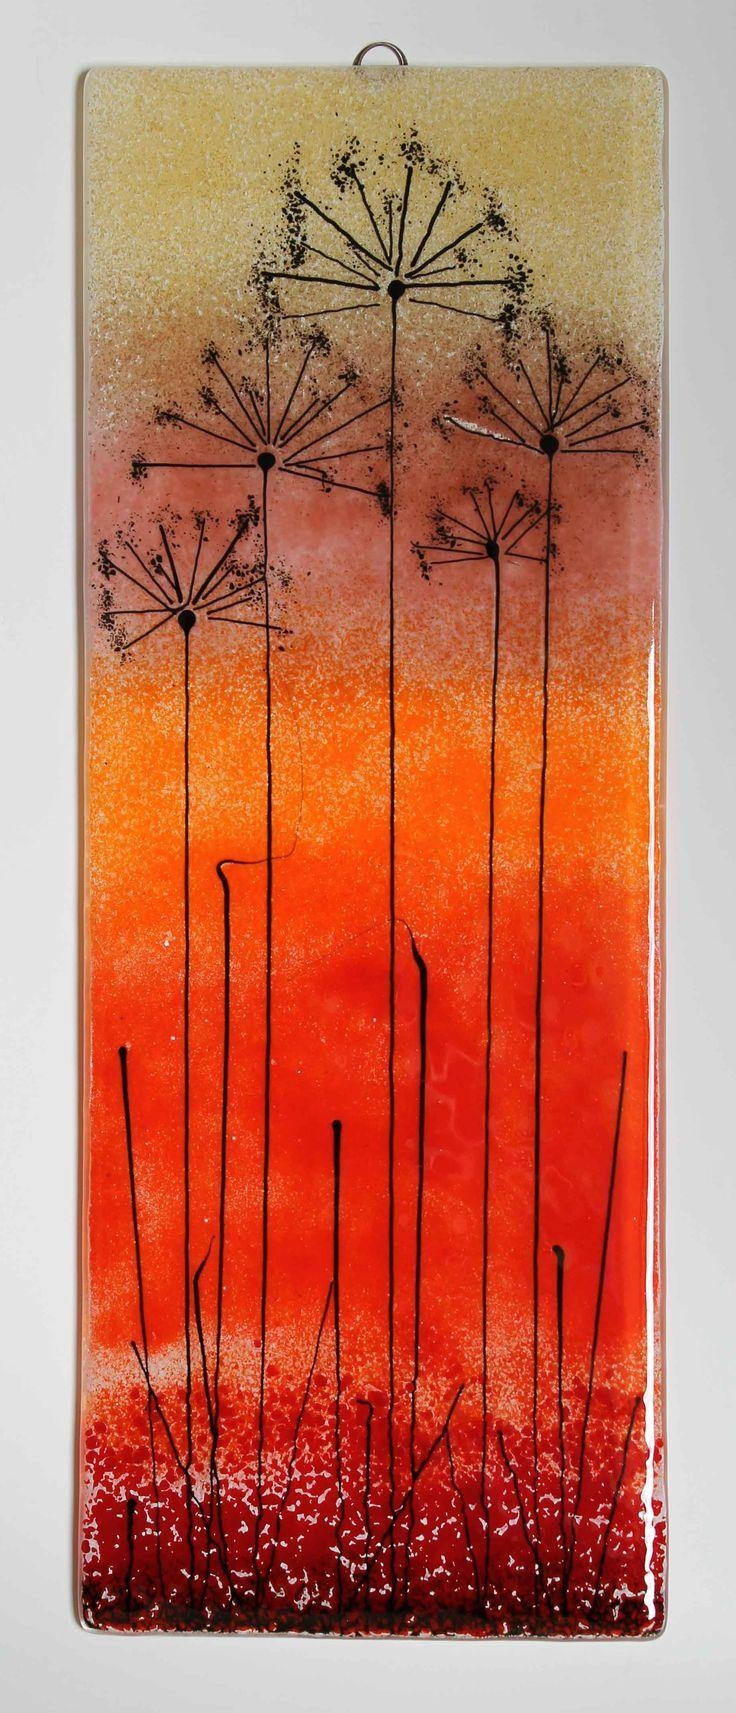 1914 Best Fused Glass – Artsy Fartsy Images On Pinterest   Stained Pertaining To Fused Glass Wall Art Devon (Image 5 of 20)